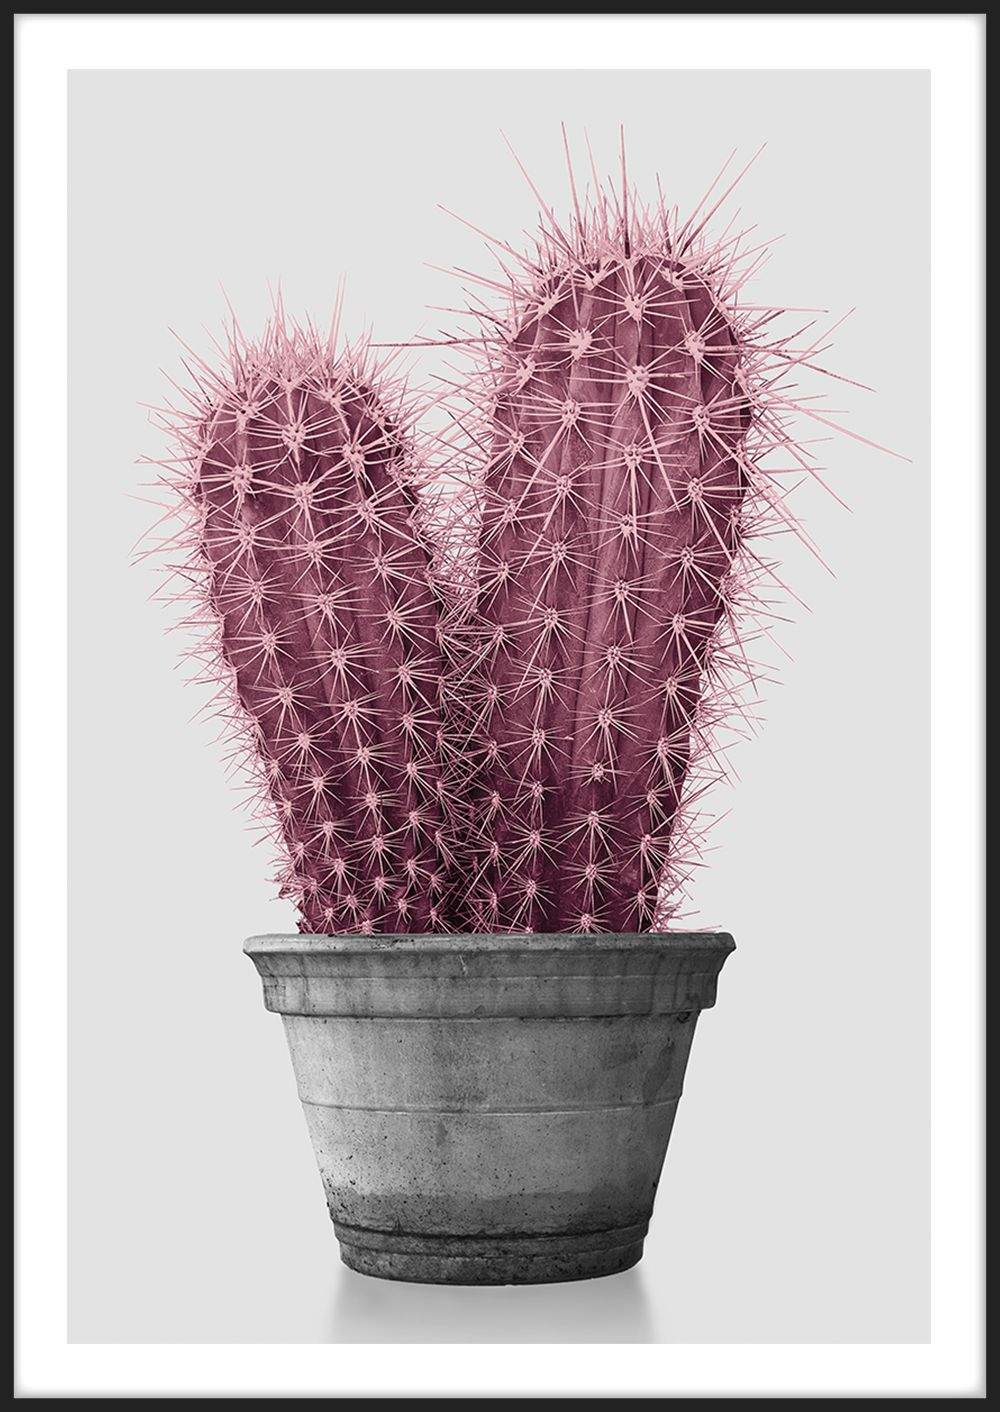 Photo of Pink Cactus, made by Insplendor©